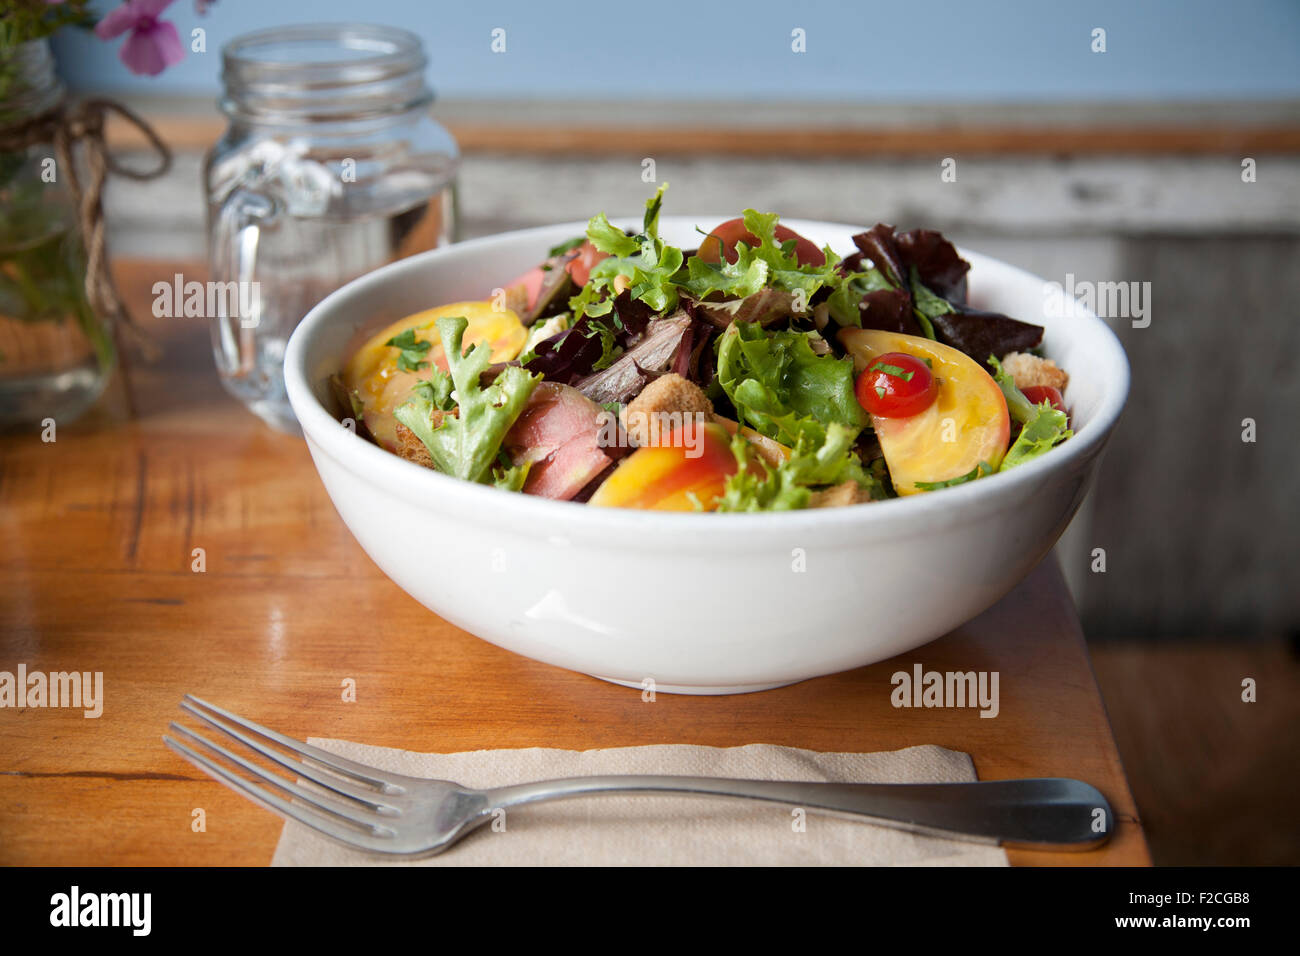 Side view of salad in white bowl with fork, napkin, - Stock Image